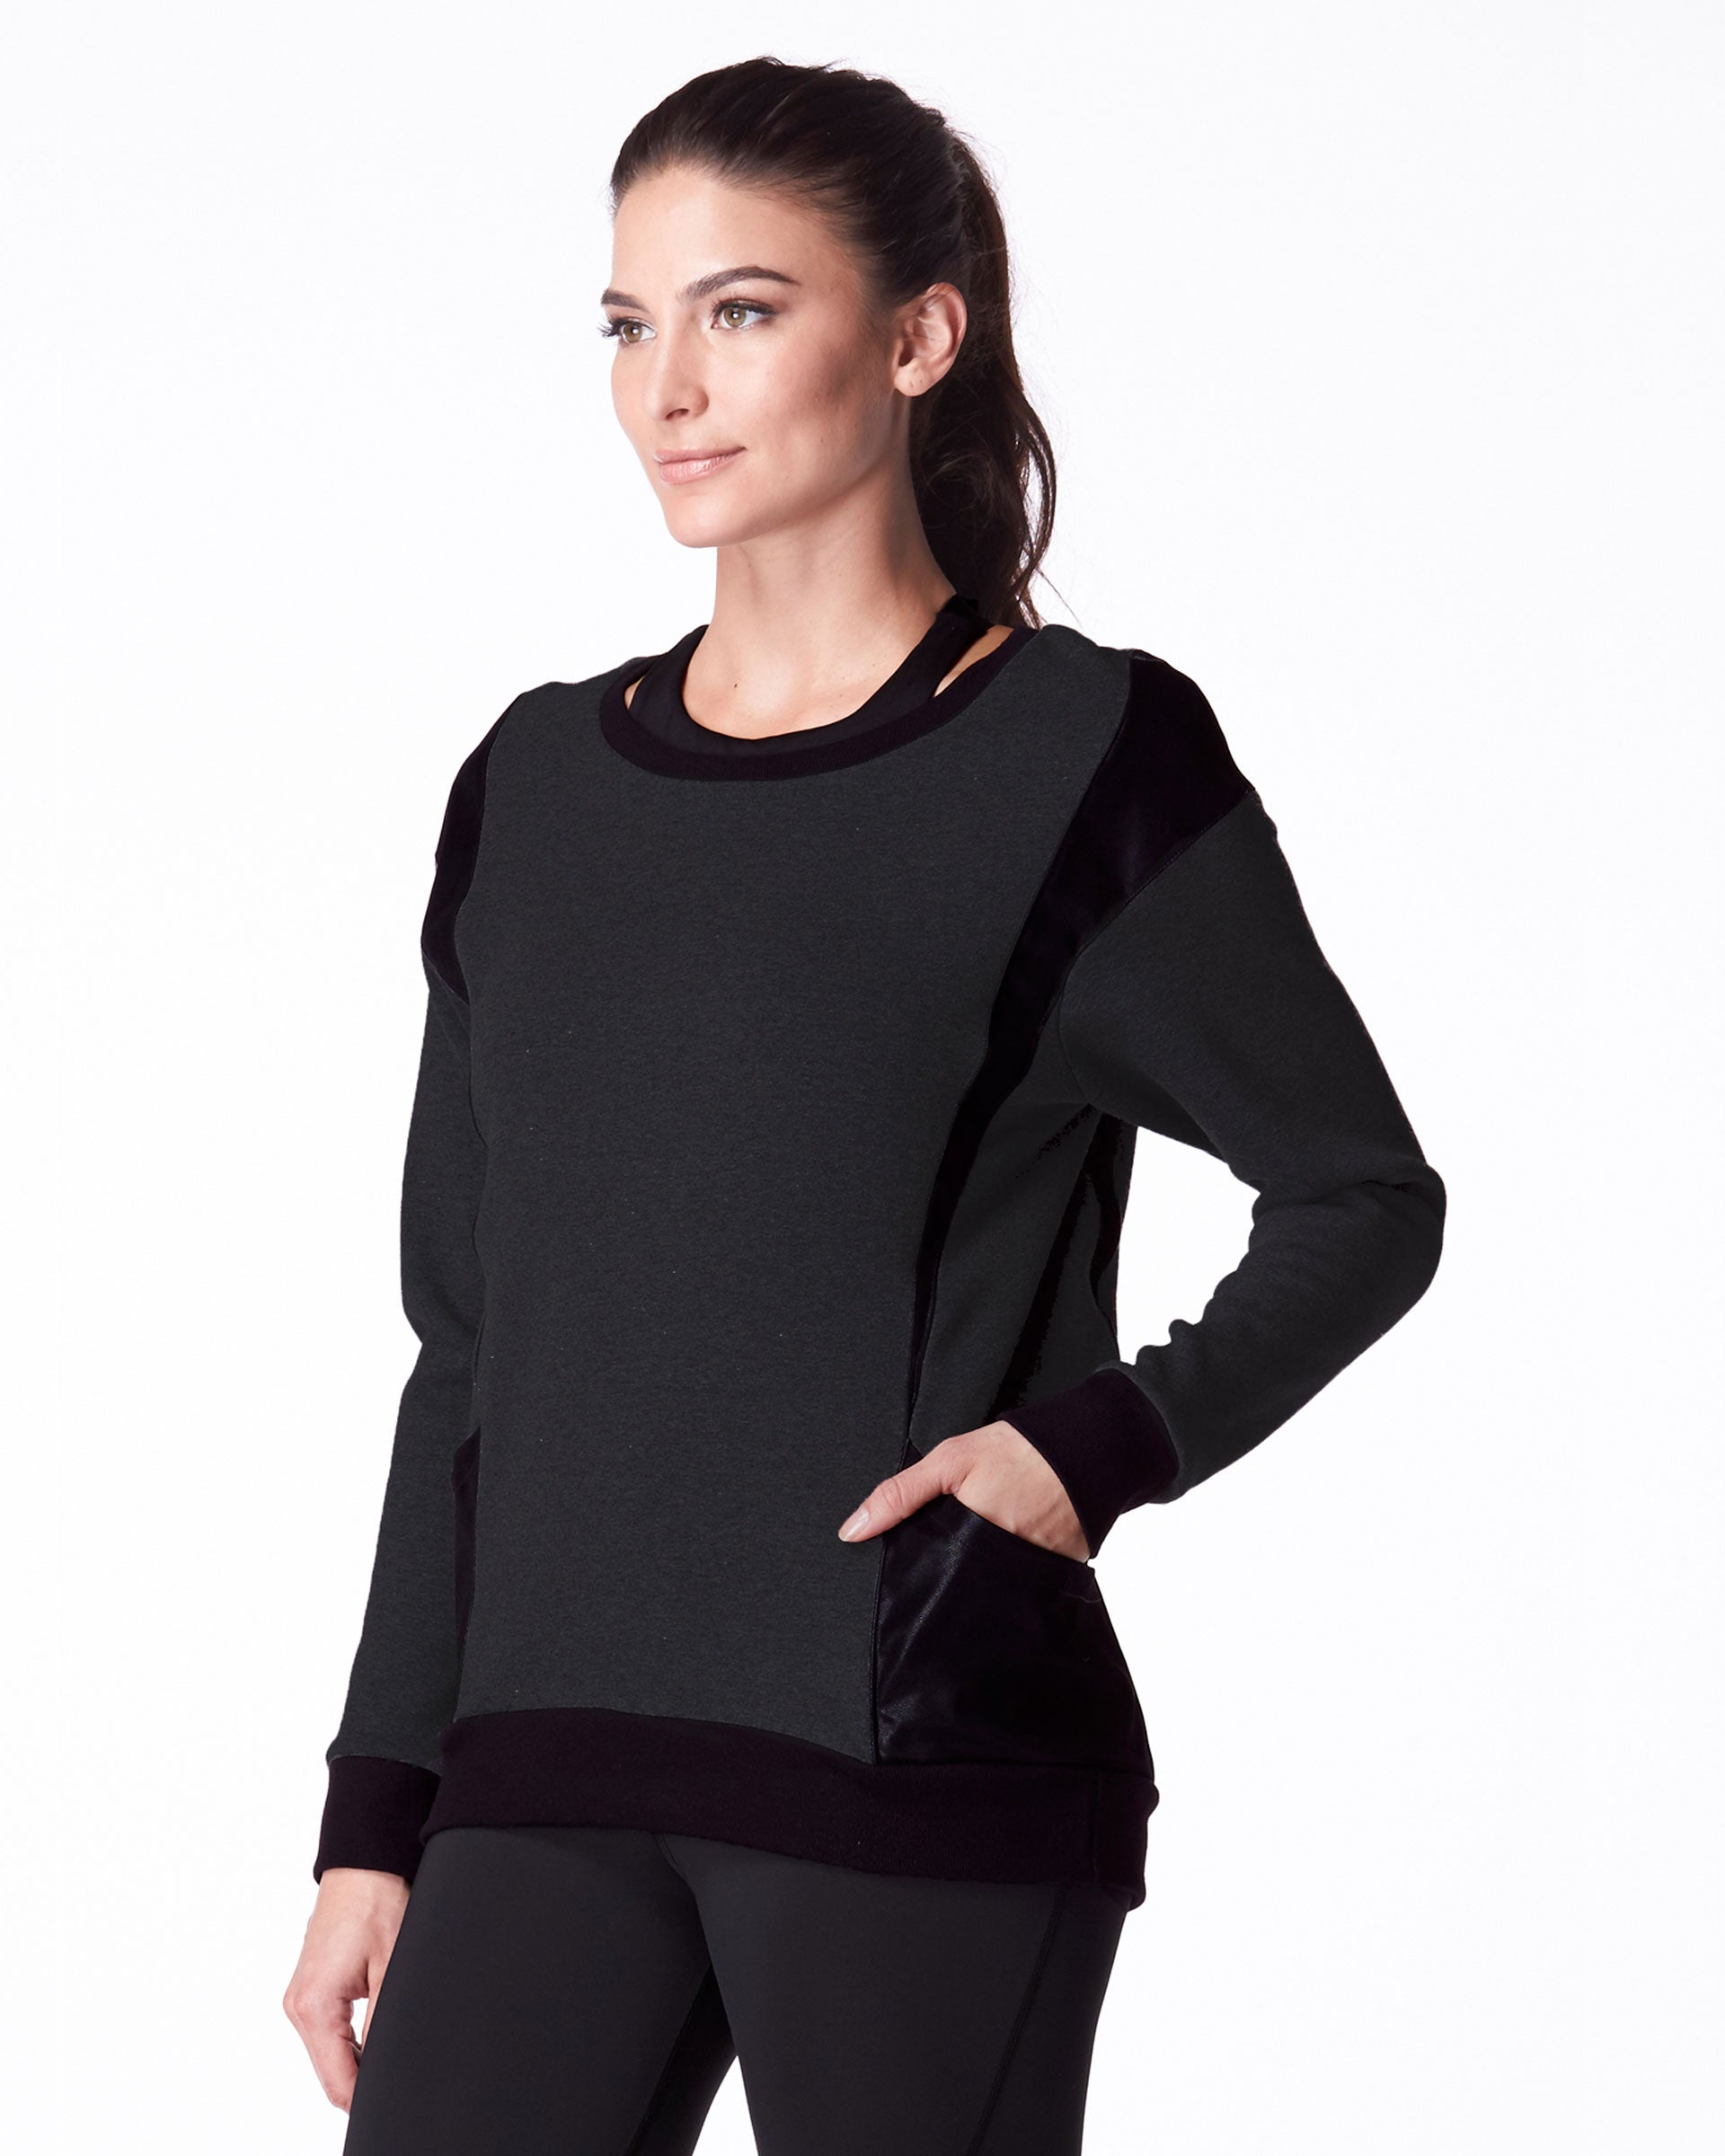 blade-sweatshirt-black